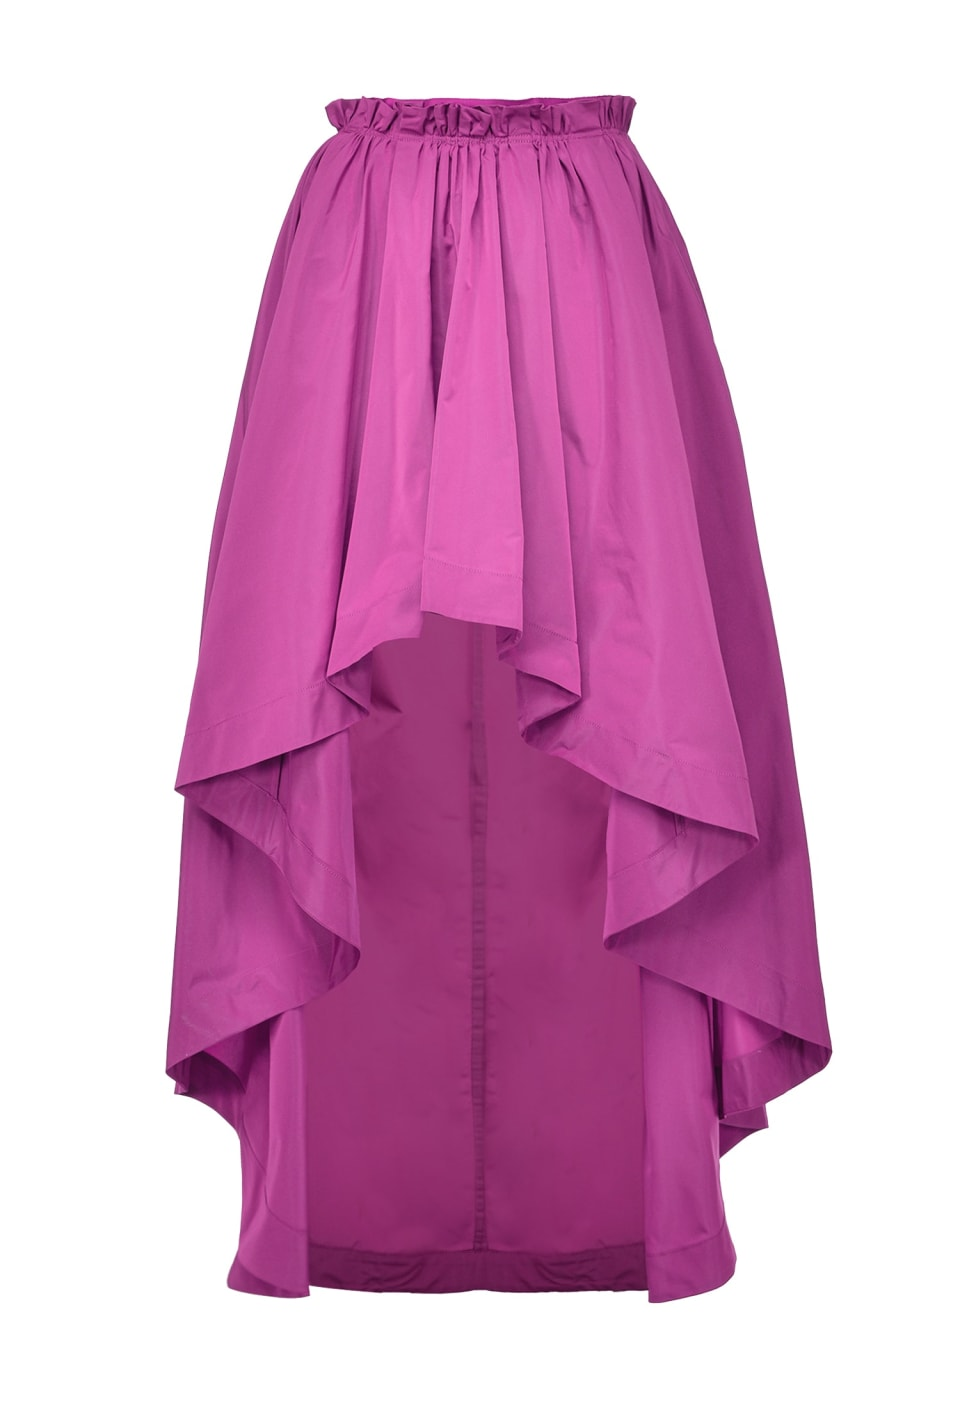 Long skirt in taffeta with gathering - Pinko